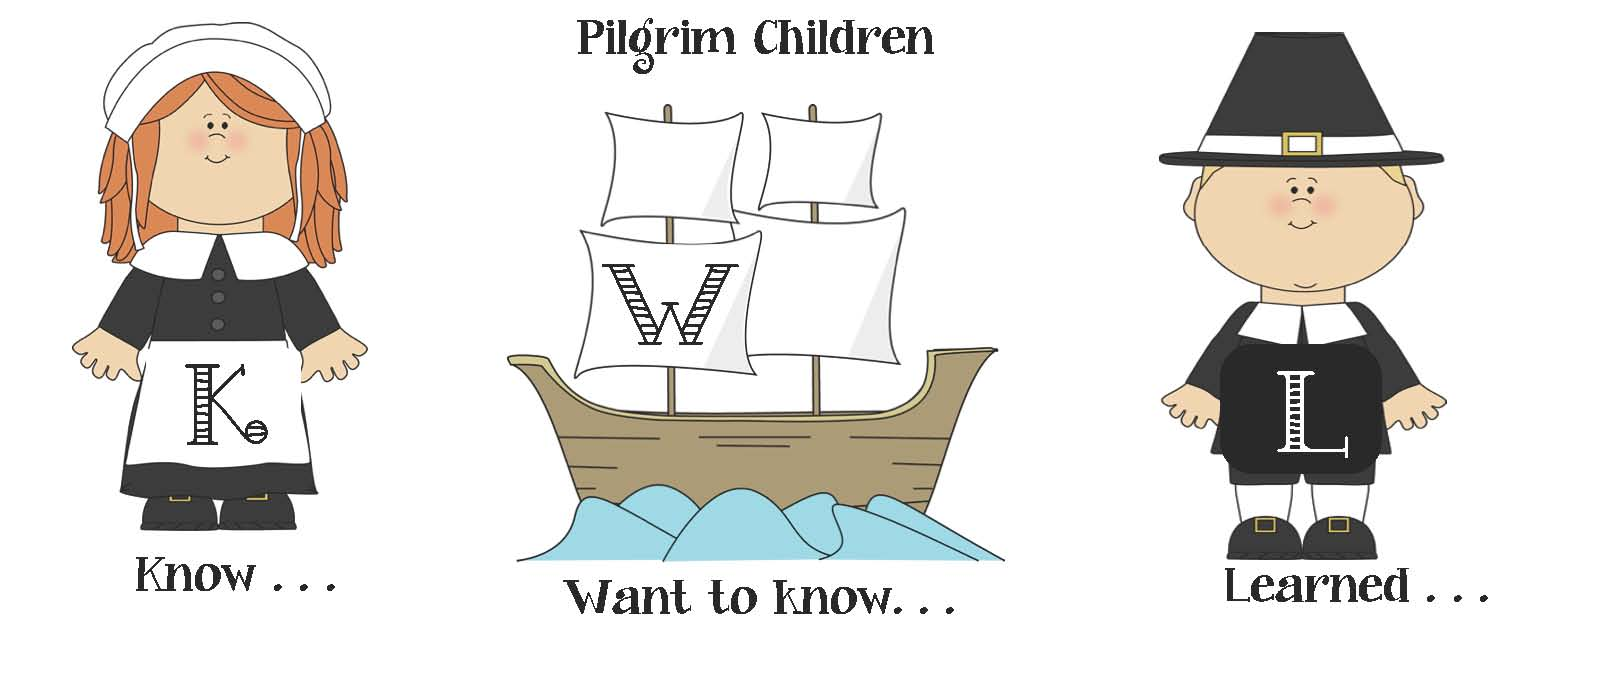 pilgrim children information, venn diagram activities, comparison and contrast activities, venn diagrams for pilgrims, venn diagrams for thanksgiving, then and now venn diagrams, graphic organizers for pilgrims, graphic organizers for thanksgiving, graphic organizer templates, KWL for pilgrims, KWL for thanksgiving,  thanksgiving actiities, pilgrim activites, wriing prompts for thanksgiving, pilgrim writing prompts, measurement activities for pilgrims, measurement activities for thanksgiving,